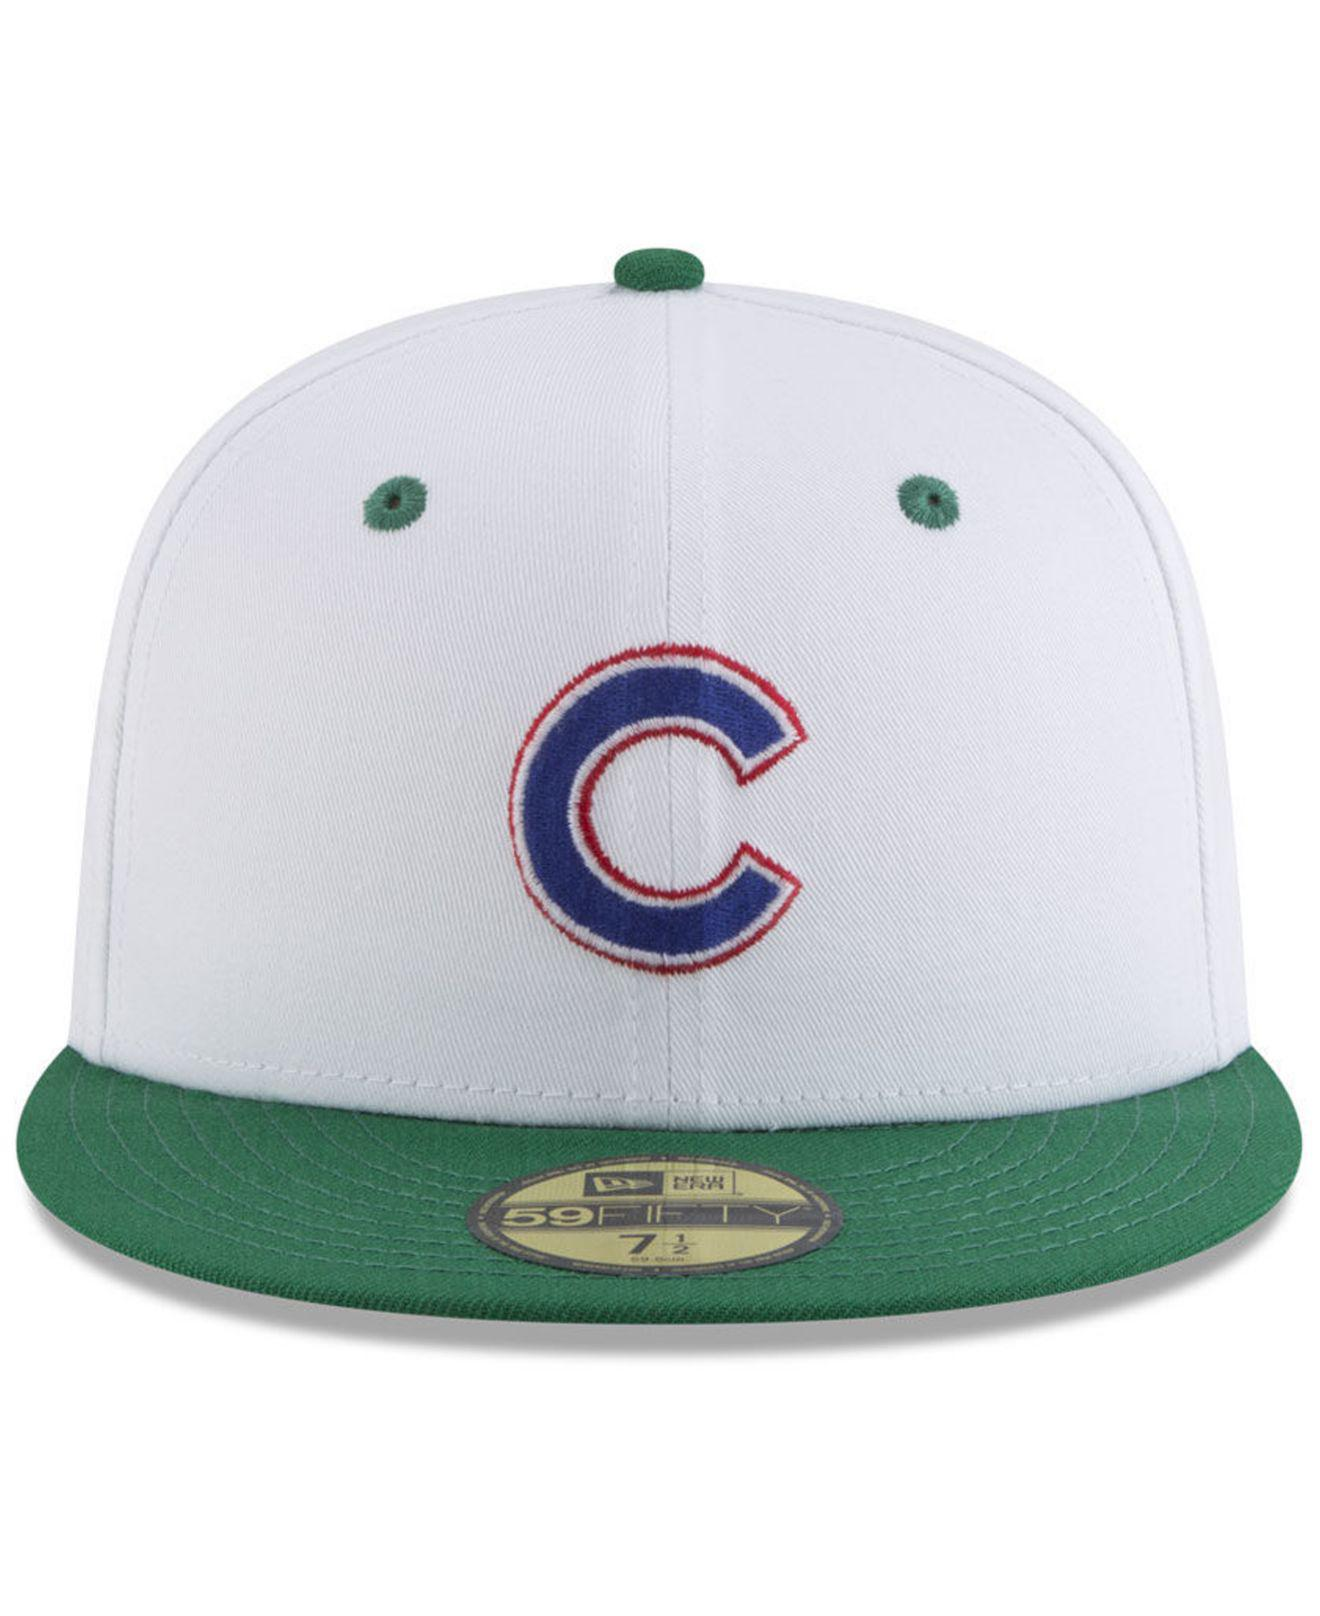 590b2276098 Lyst - KTZ Chicago Cubs Retro Diamond 59fifty Fitted Cap in White for Men